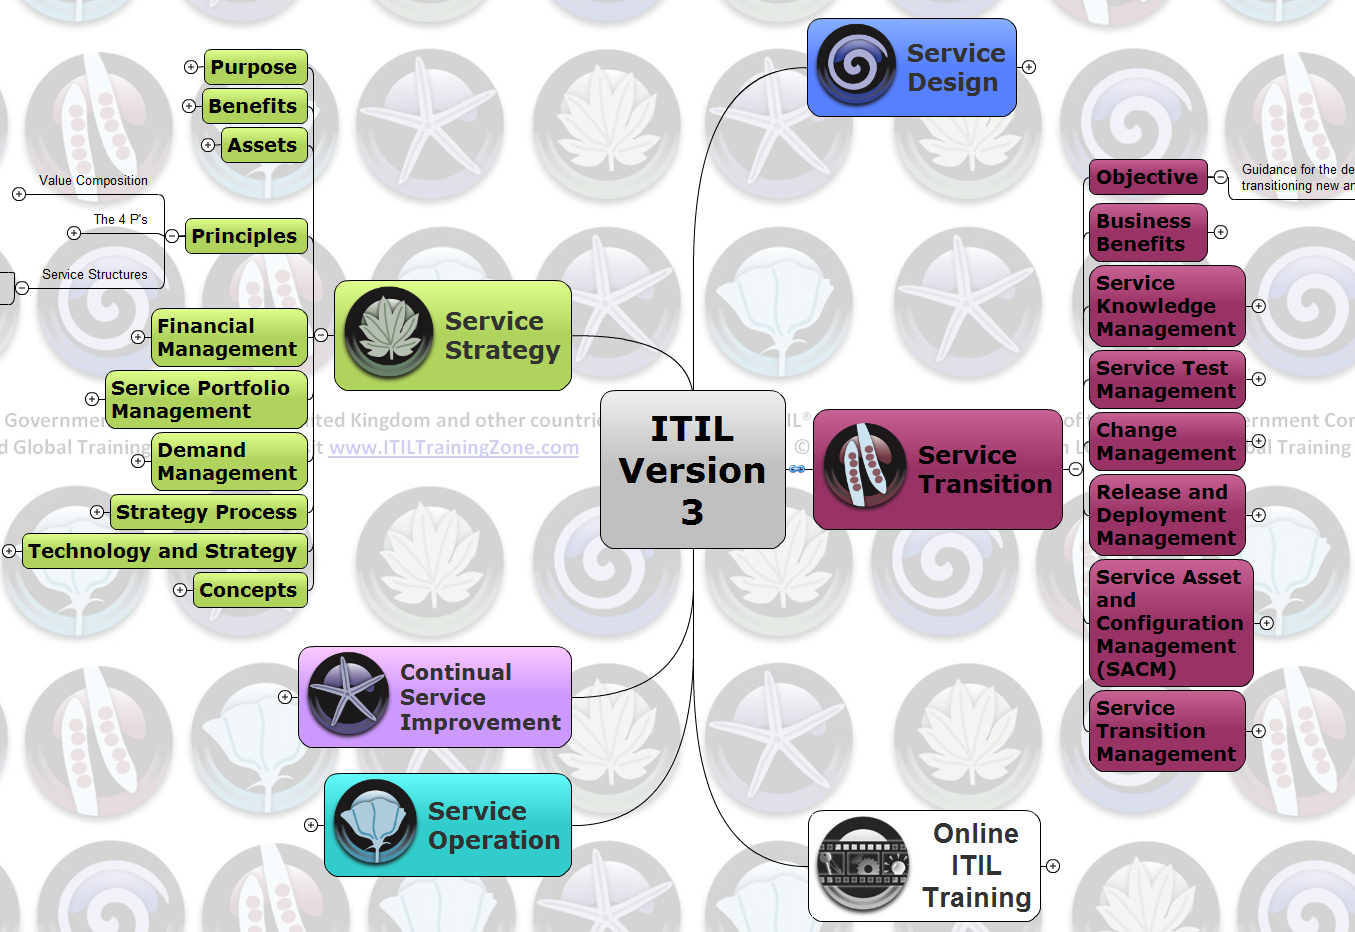 Itil certification mindmap zubkiewicz i think its excellent aid for anybody preparing for itil foundation certificate which helps in reviewing material and better comprehension of the subject xflitez Images